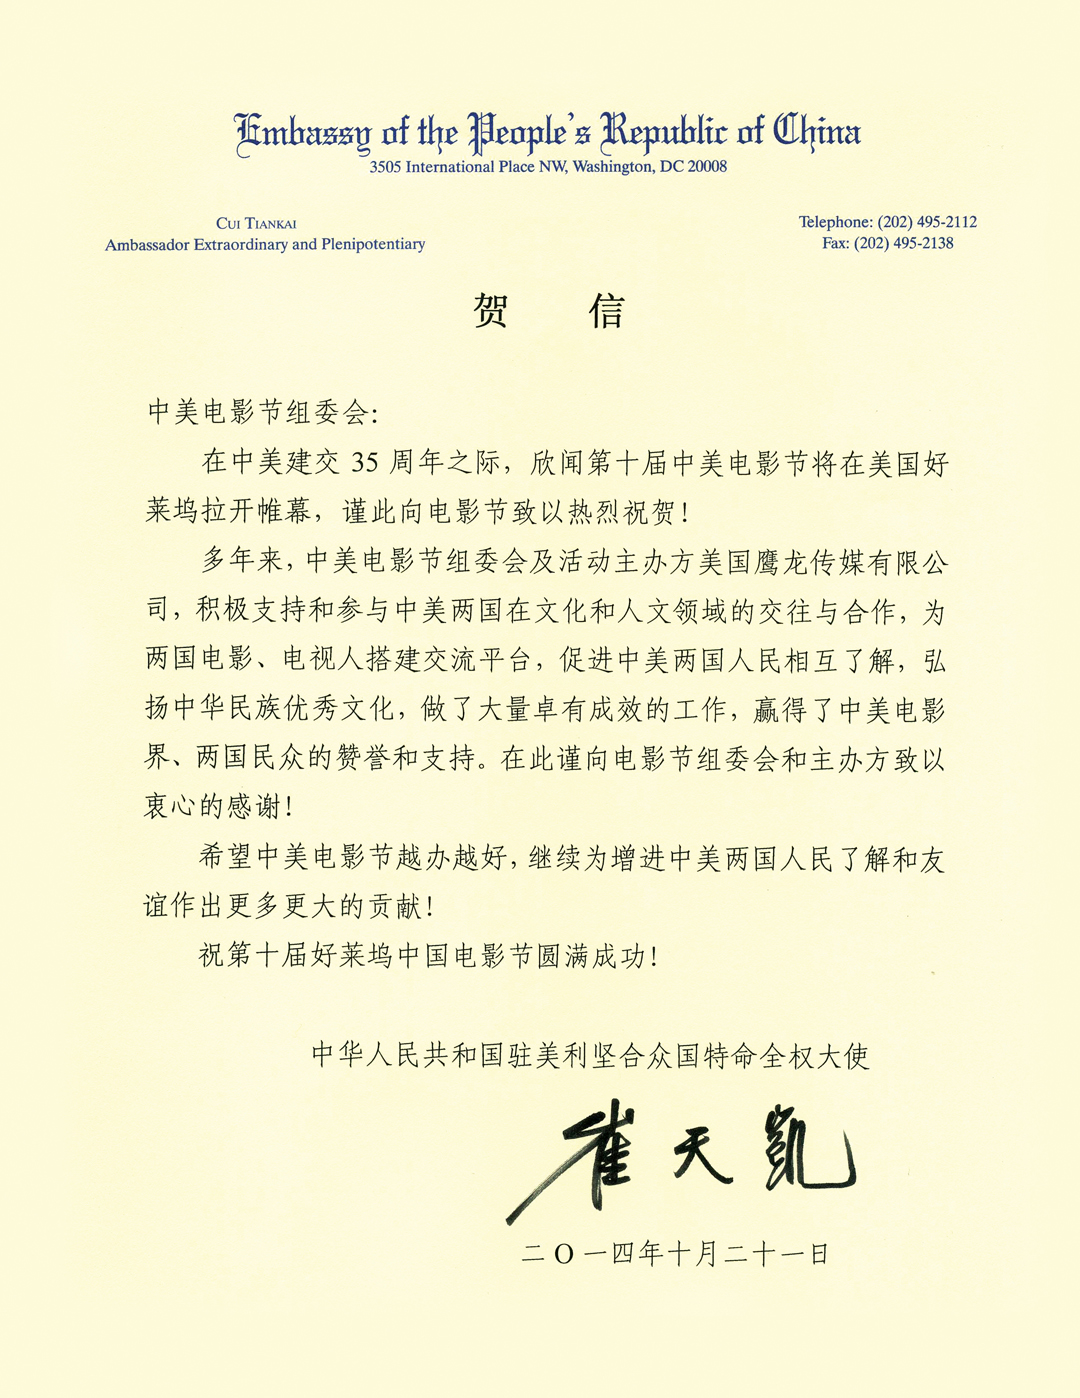 2014 letters of recognition from chinese and us officials harvard19322015 10 15t1809460000